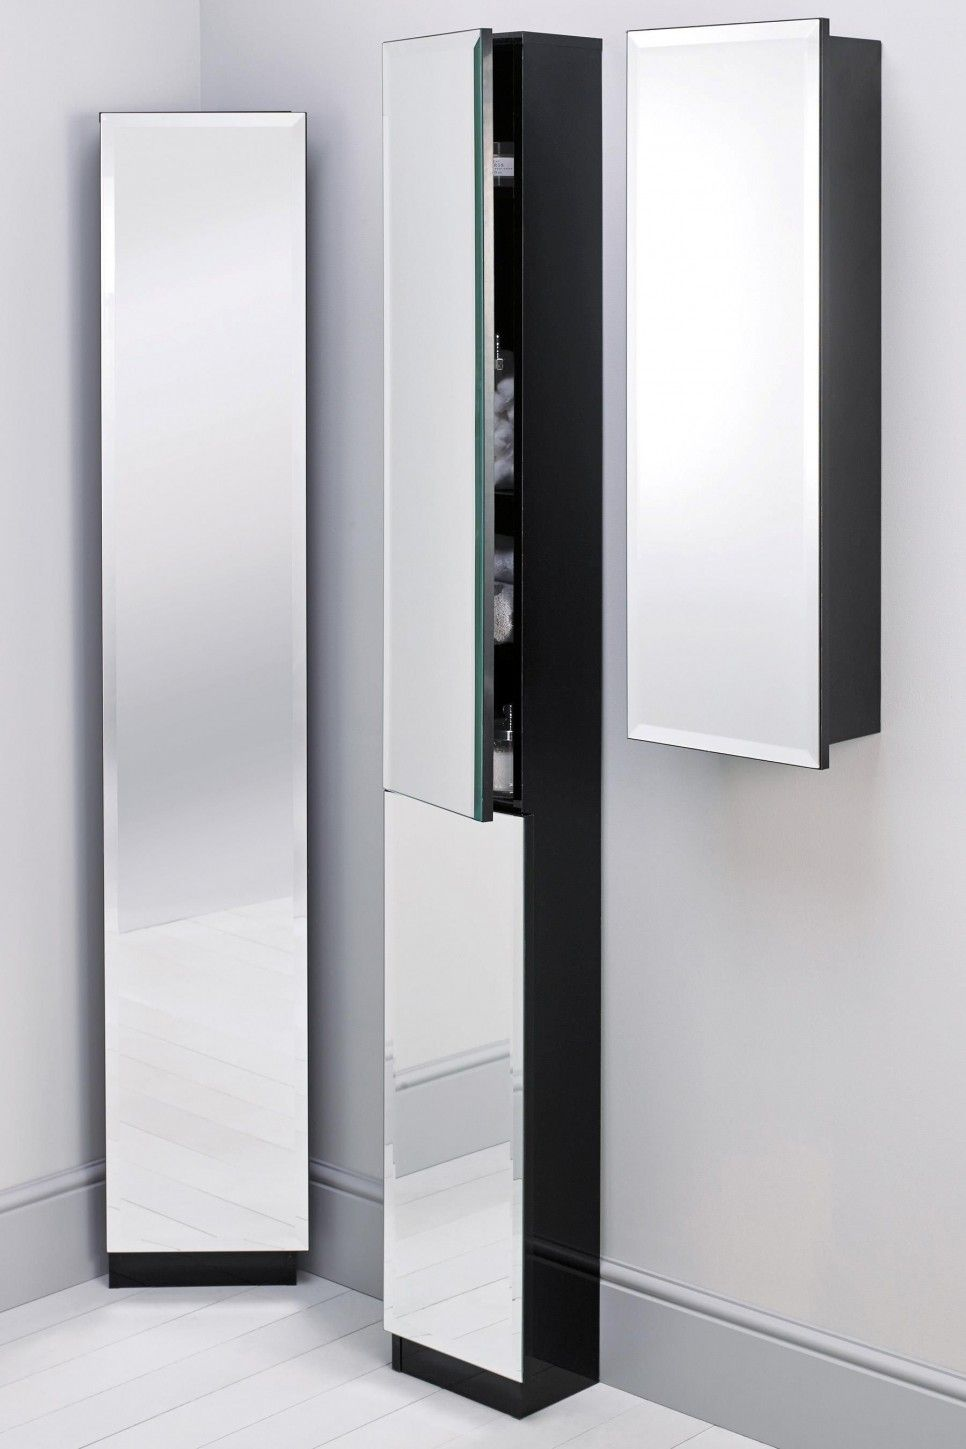 Wood Wall Muonted Tall Modern Bathroom Storage Cabinet With Glass